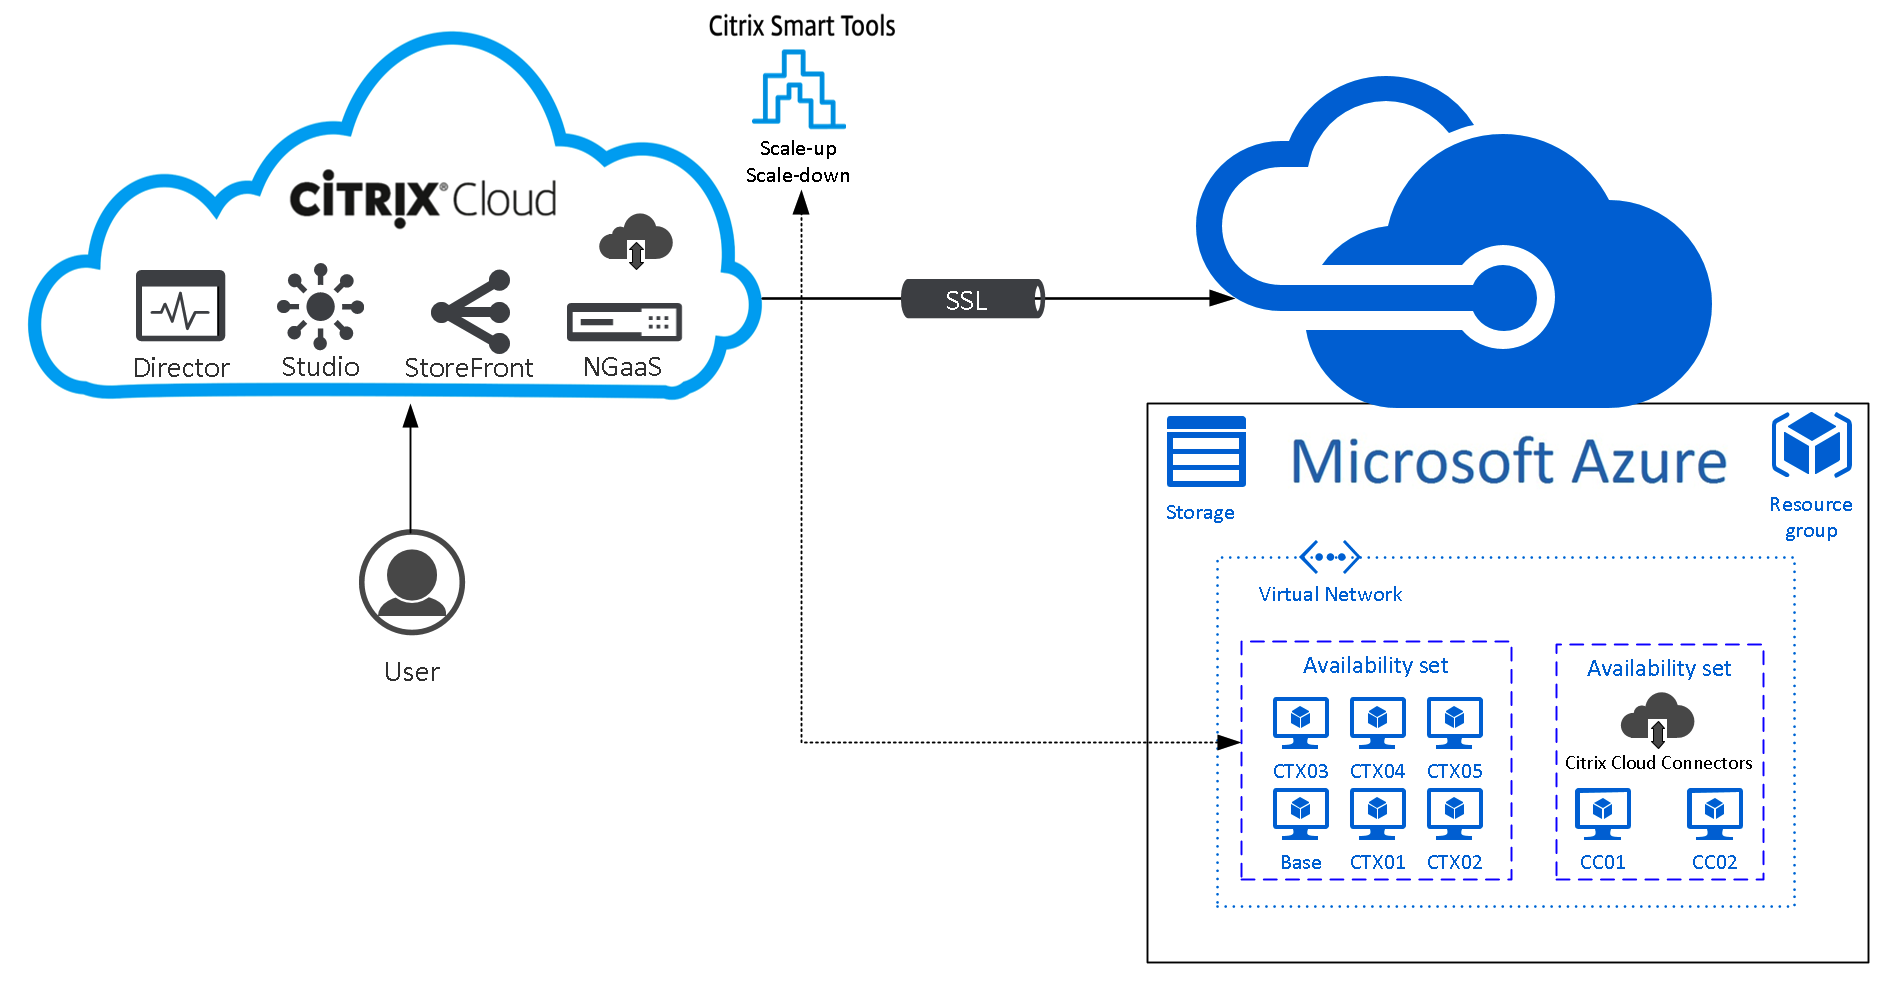 A Breakdown on Citrix Cloud Digital Workspaces in Microsoft